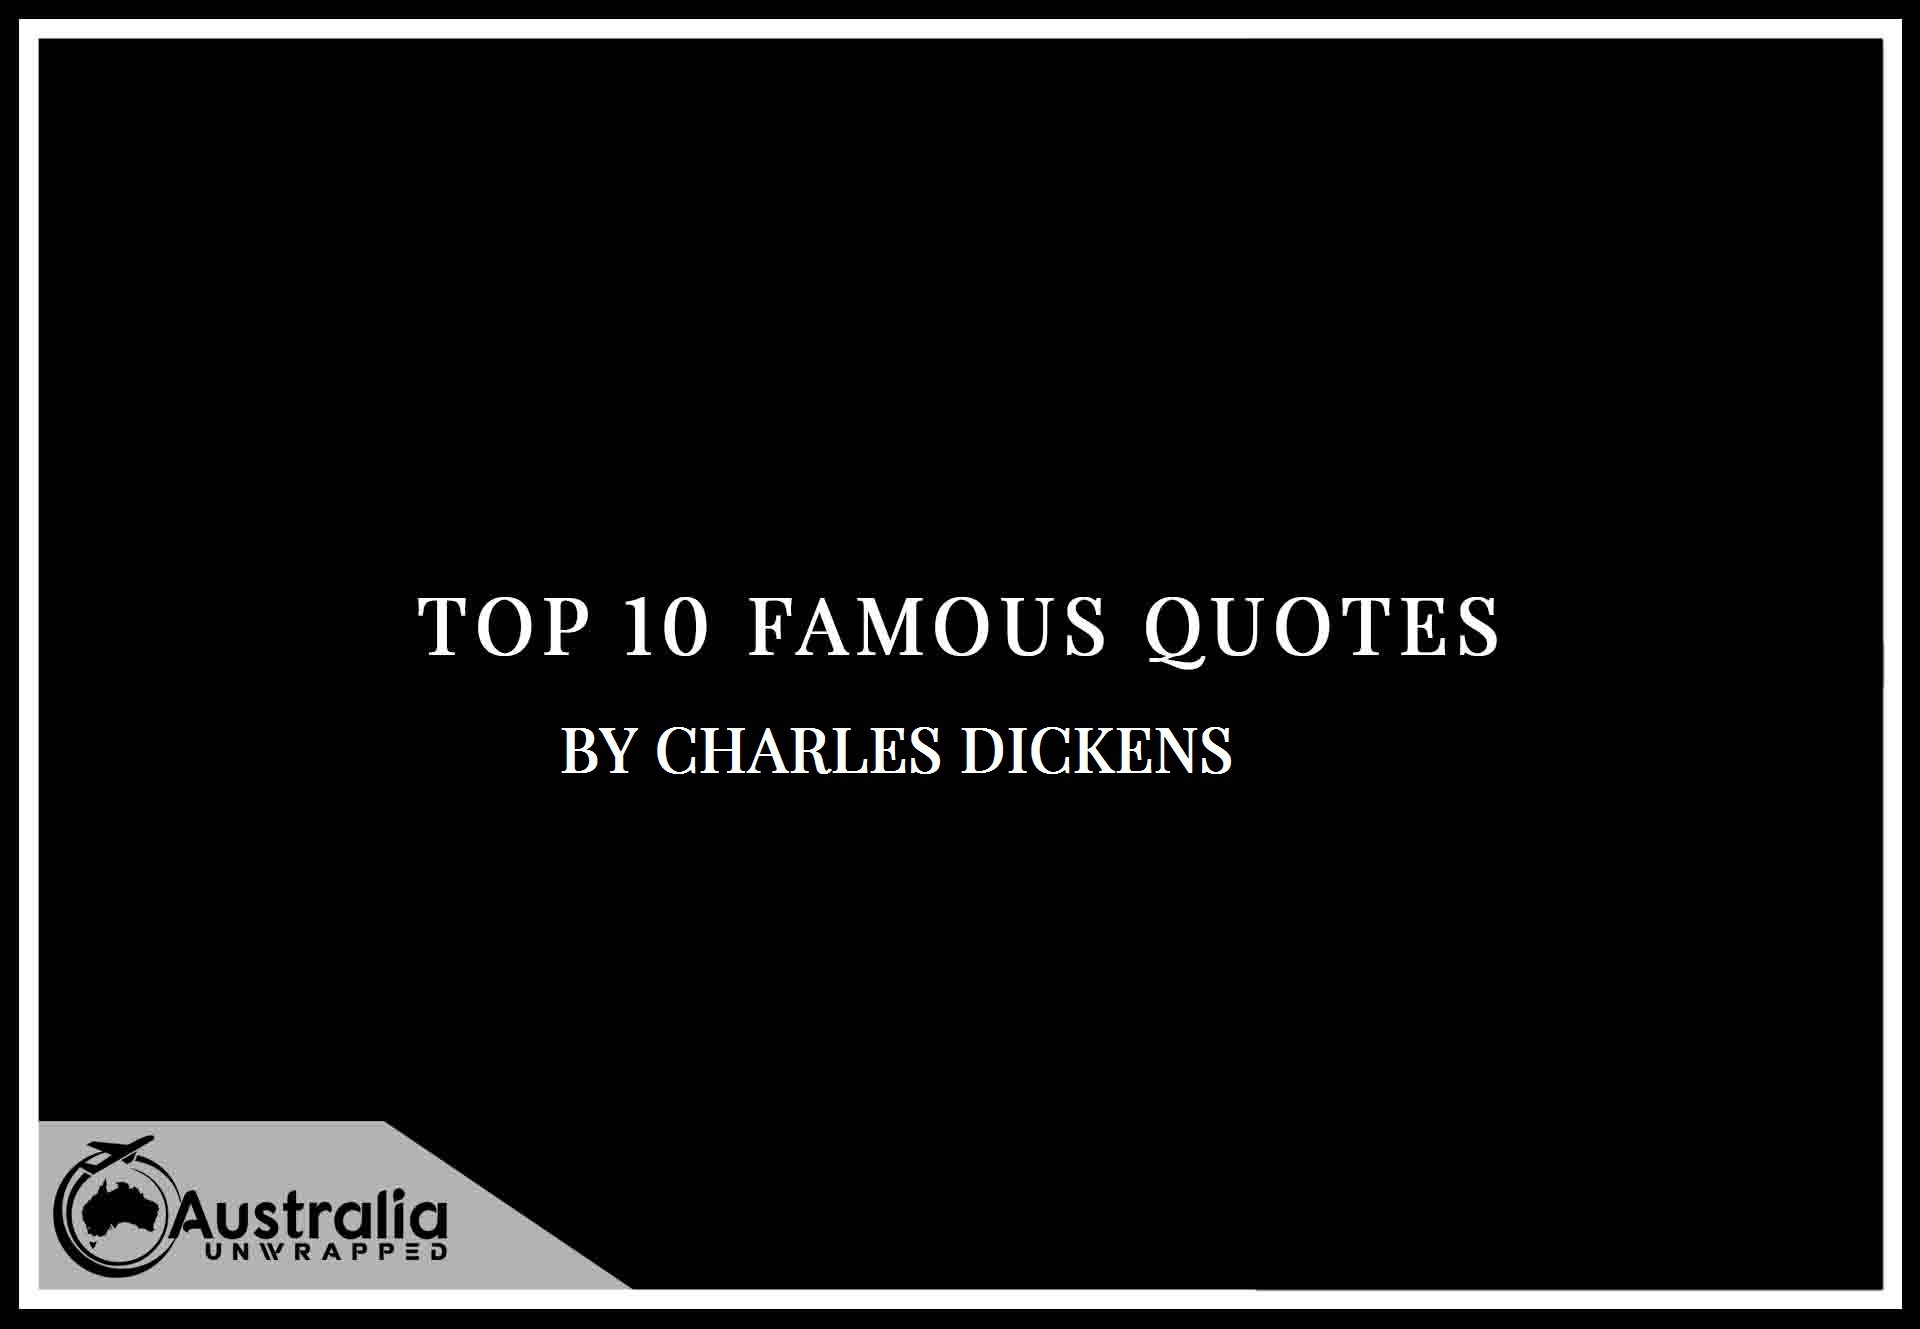 Charles Dickens's Top 10 Popular and Famous Quotes